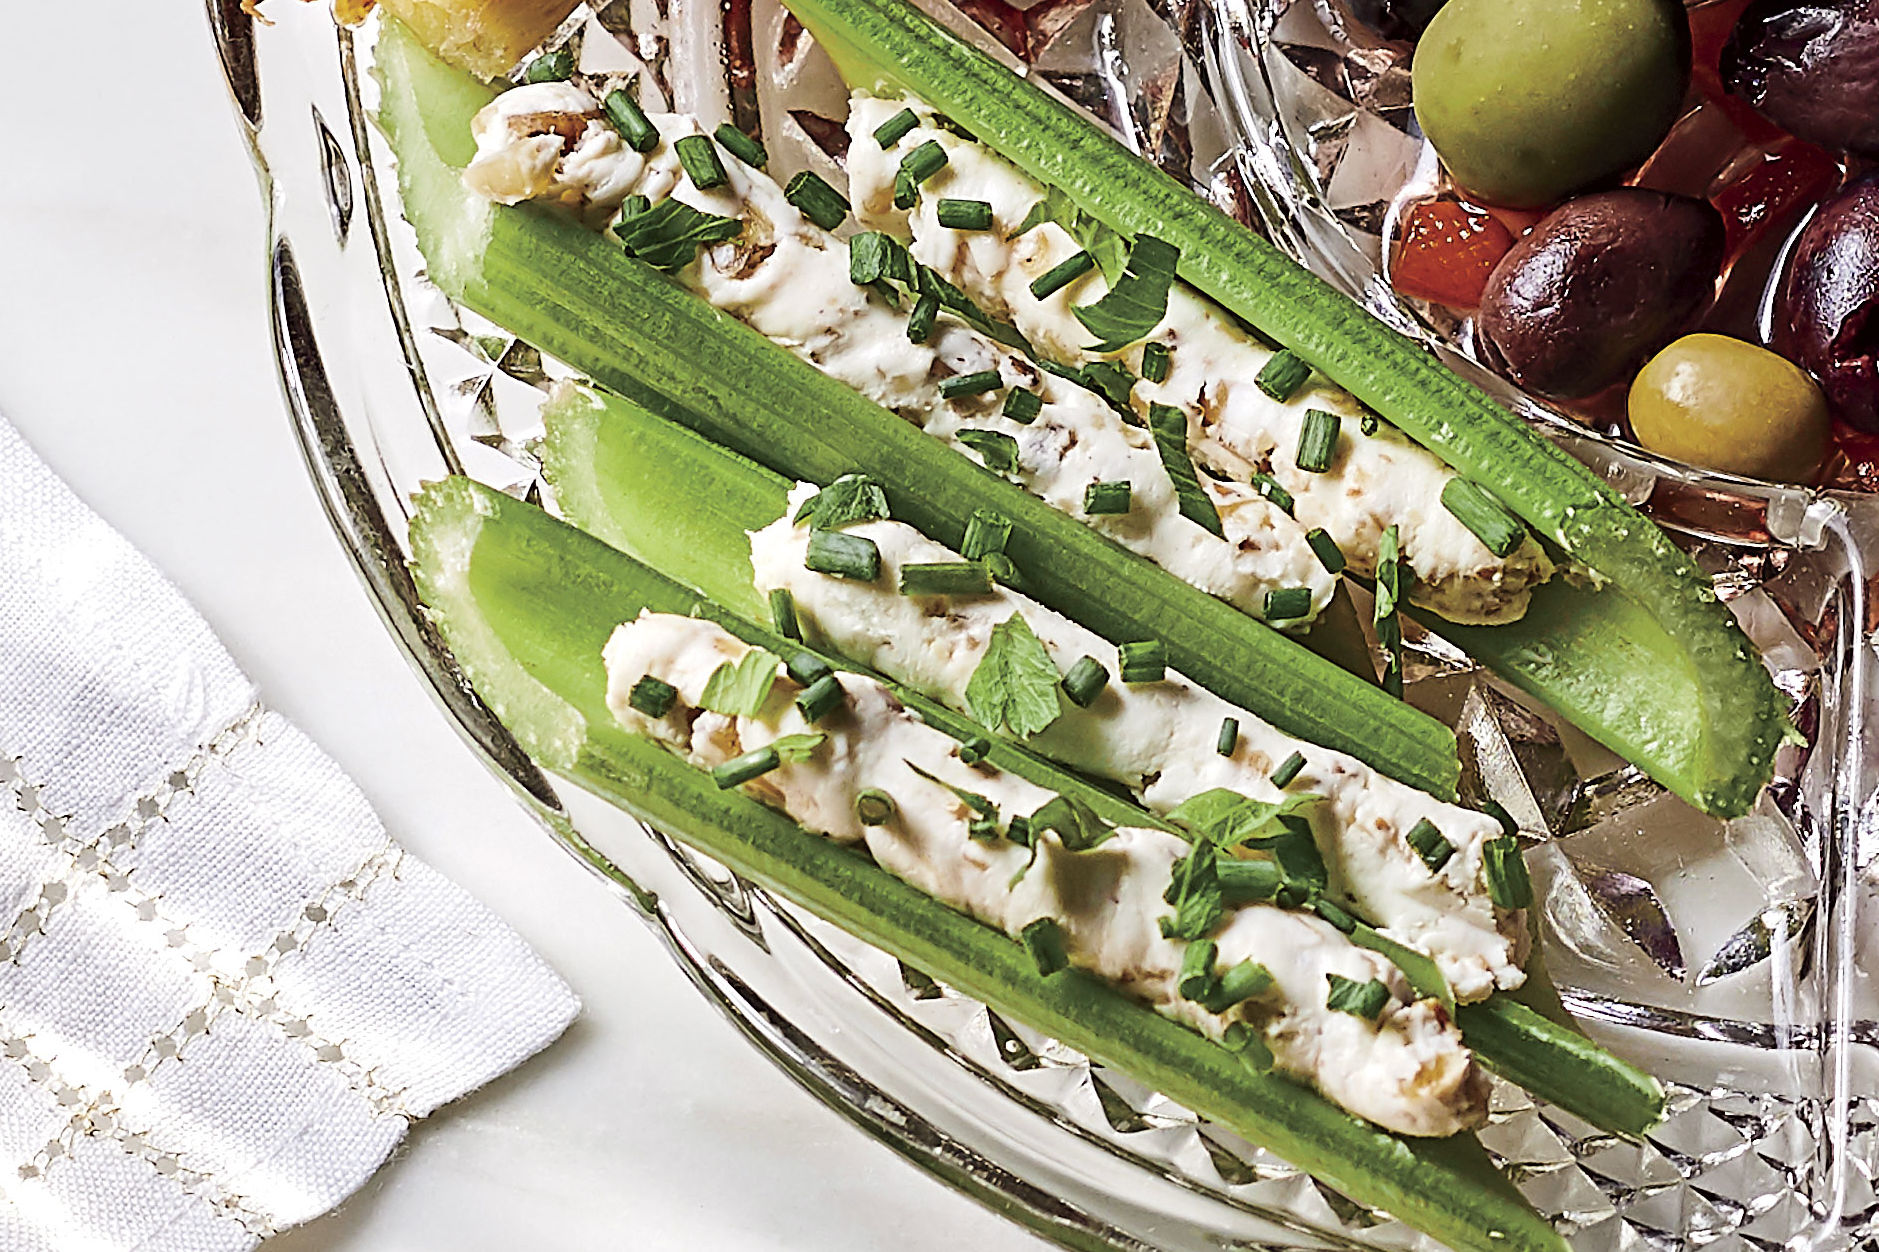 Stuffed Celery Recipe with Cream Cheese and Walnuts